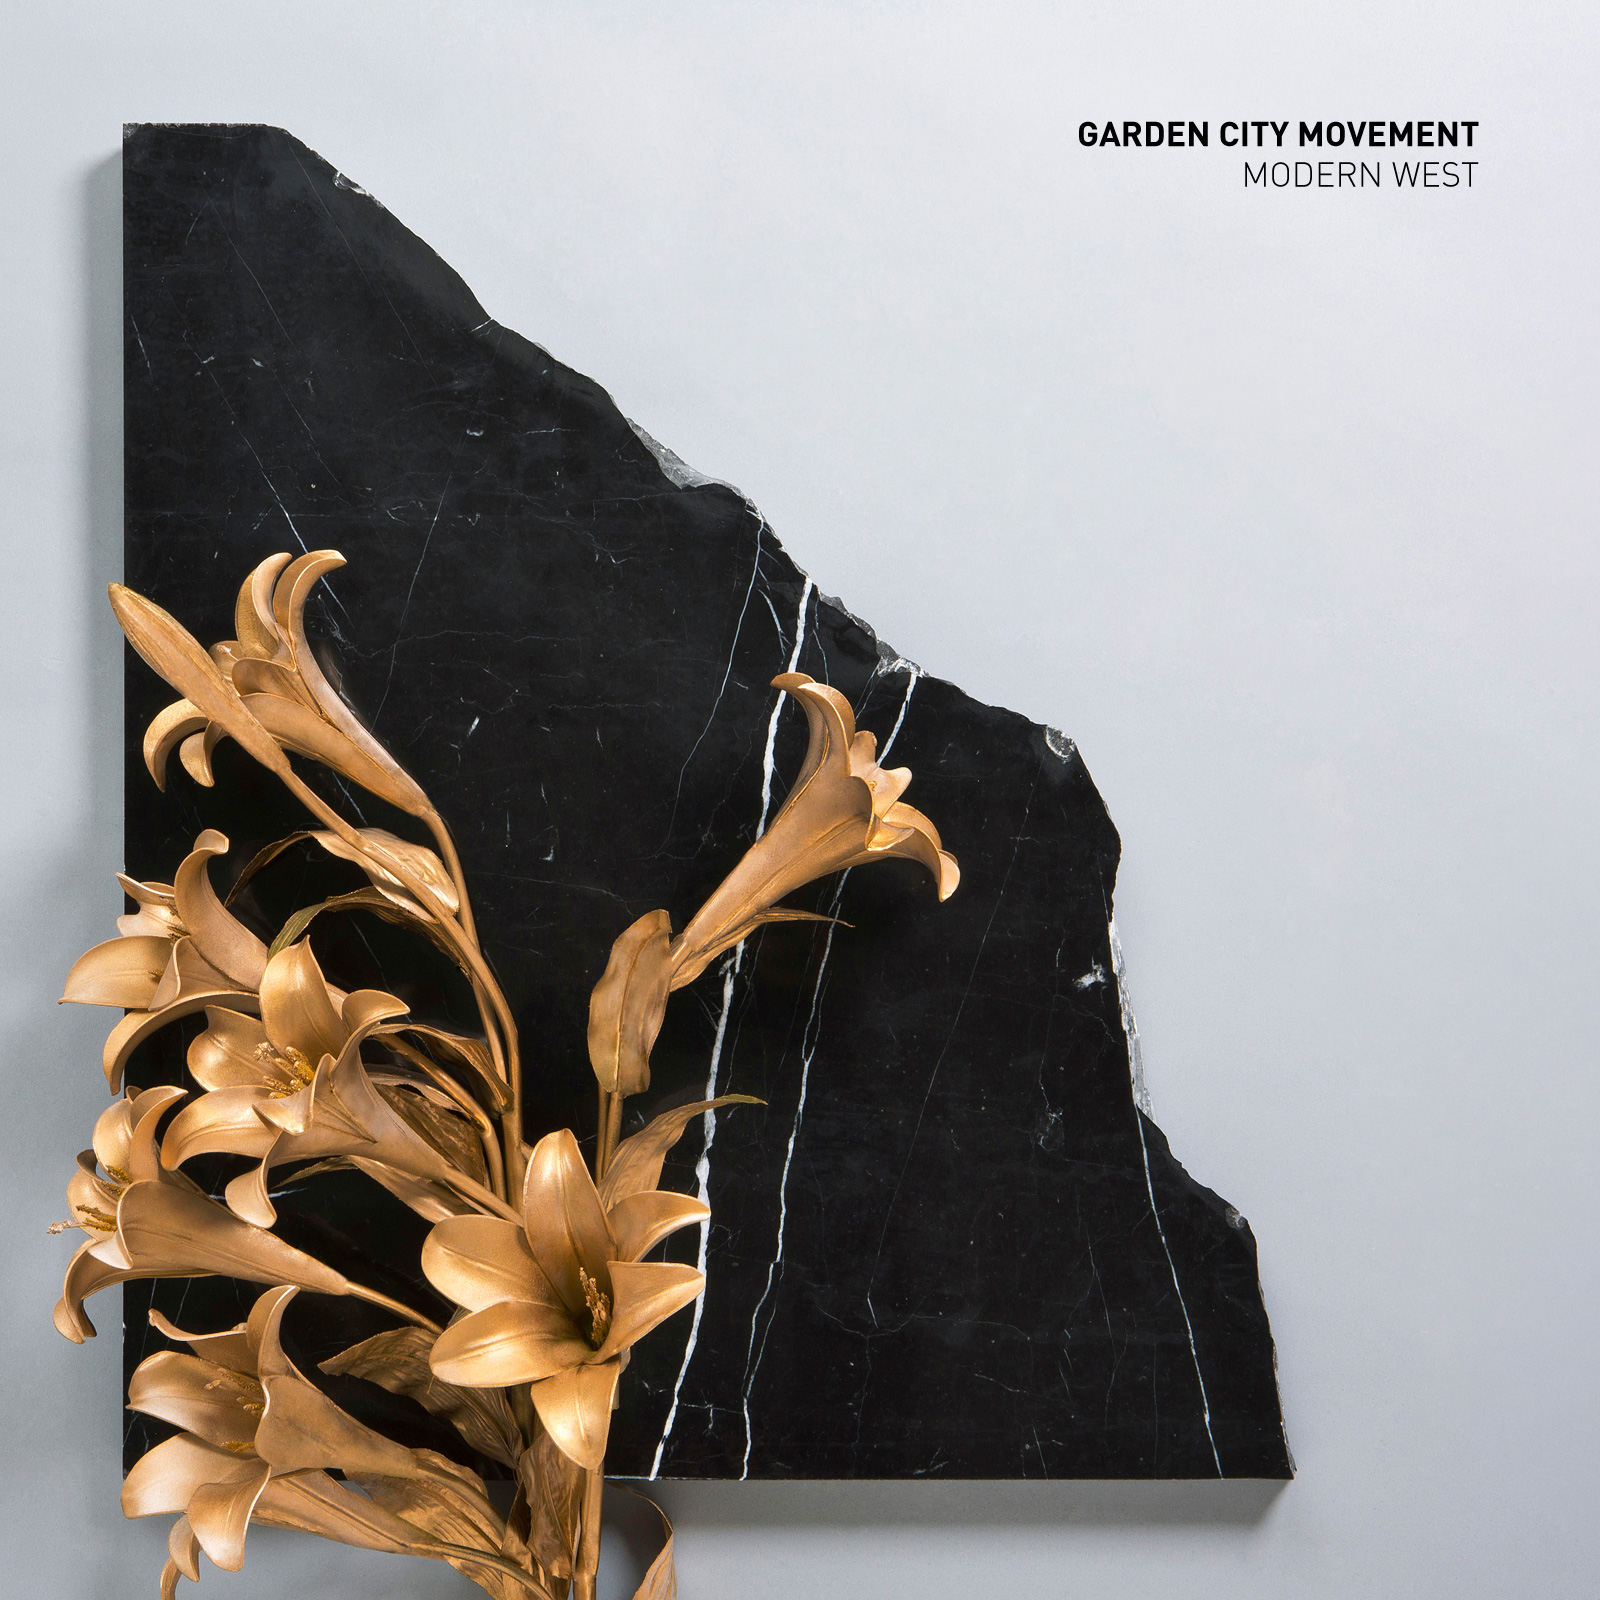 Garden City Movement - Modern West